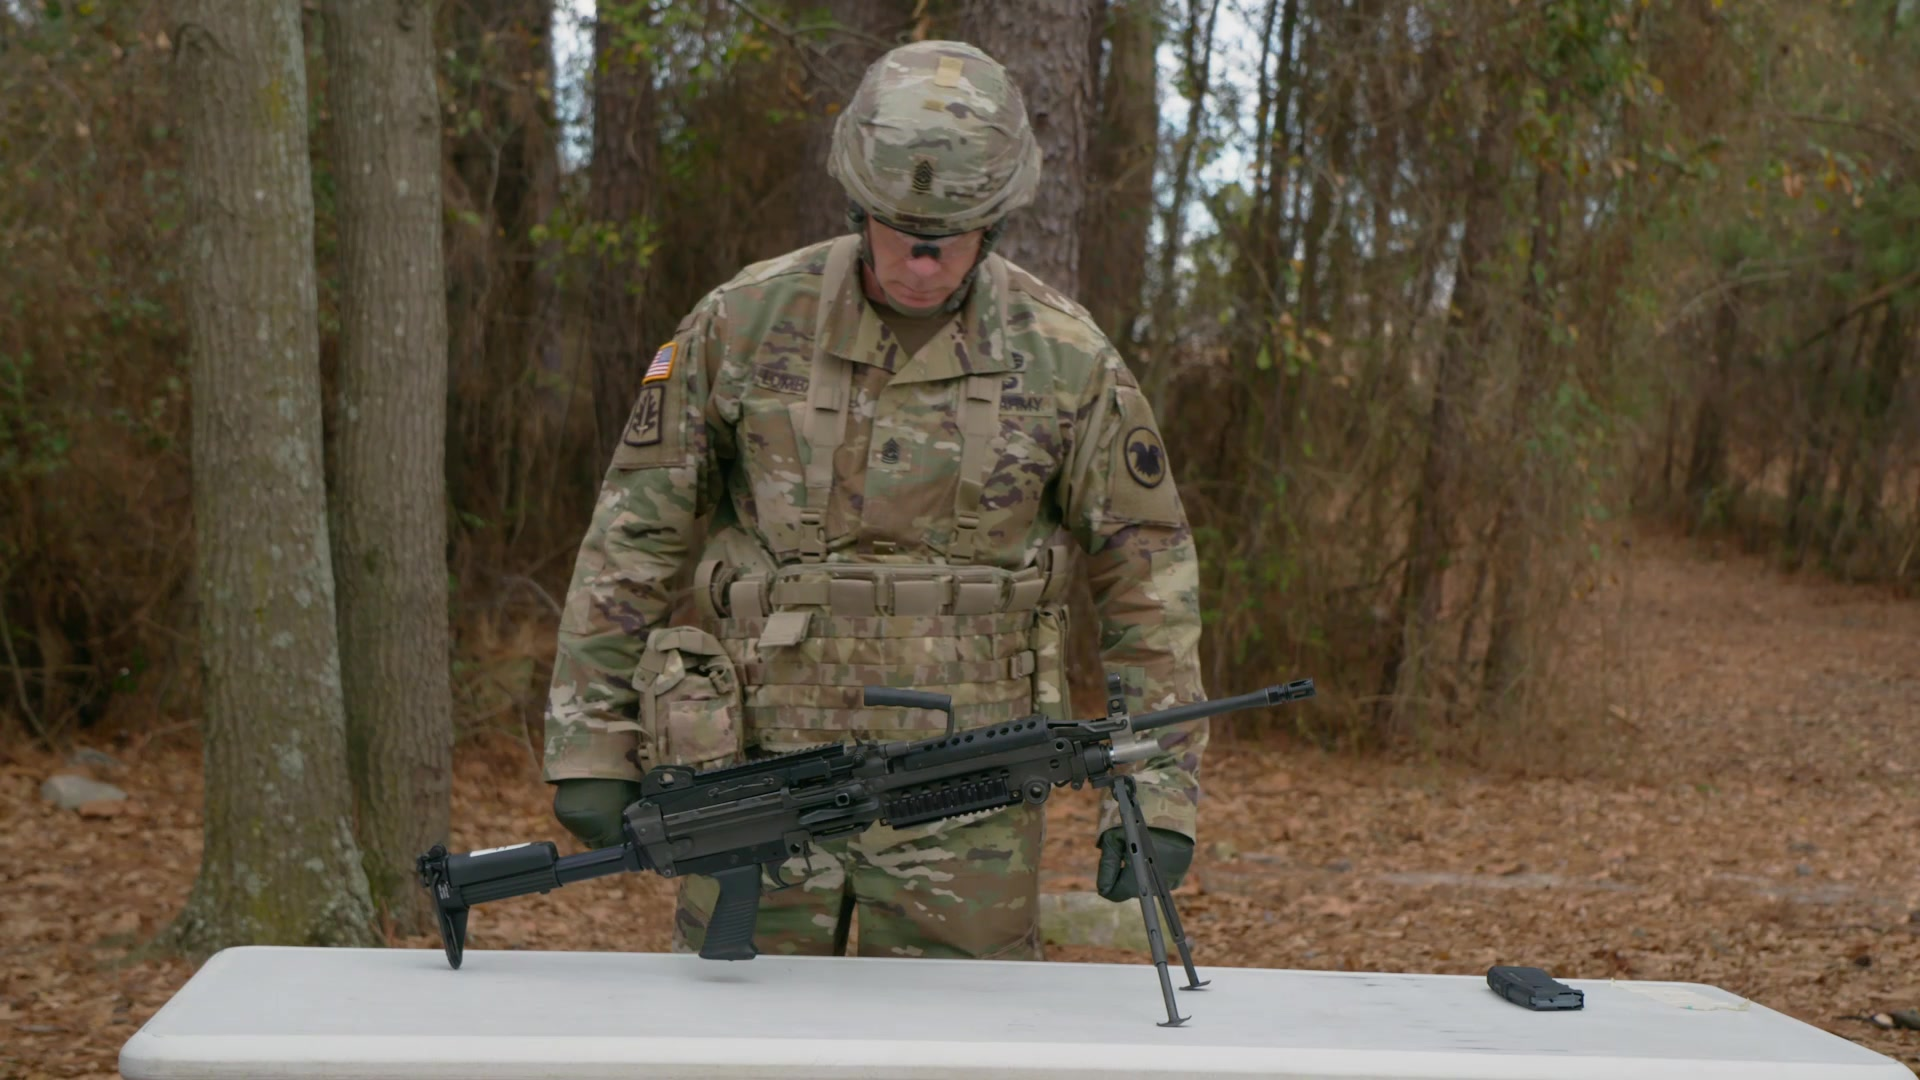 Cmd. Sgt. Maj. Andrew Lombardo, U.S. Army Reserve command sergeant major, demonstrates the Expert Soldier Badge tasks for the M249 machine gun.